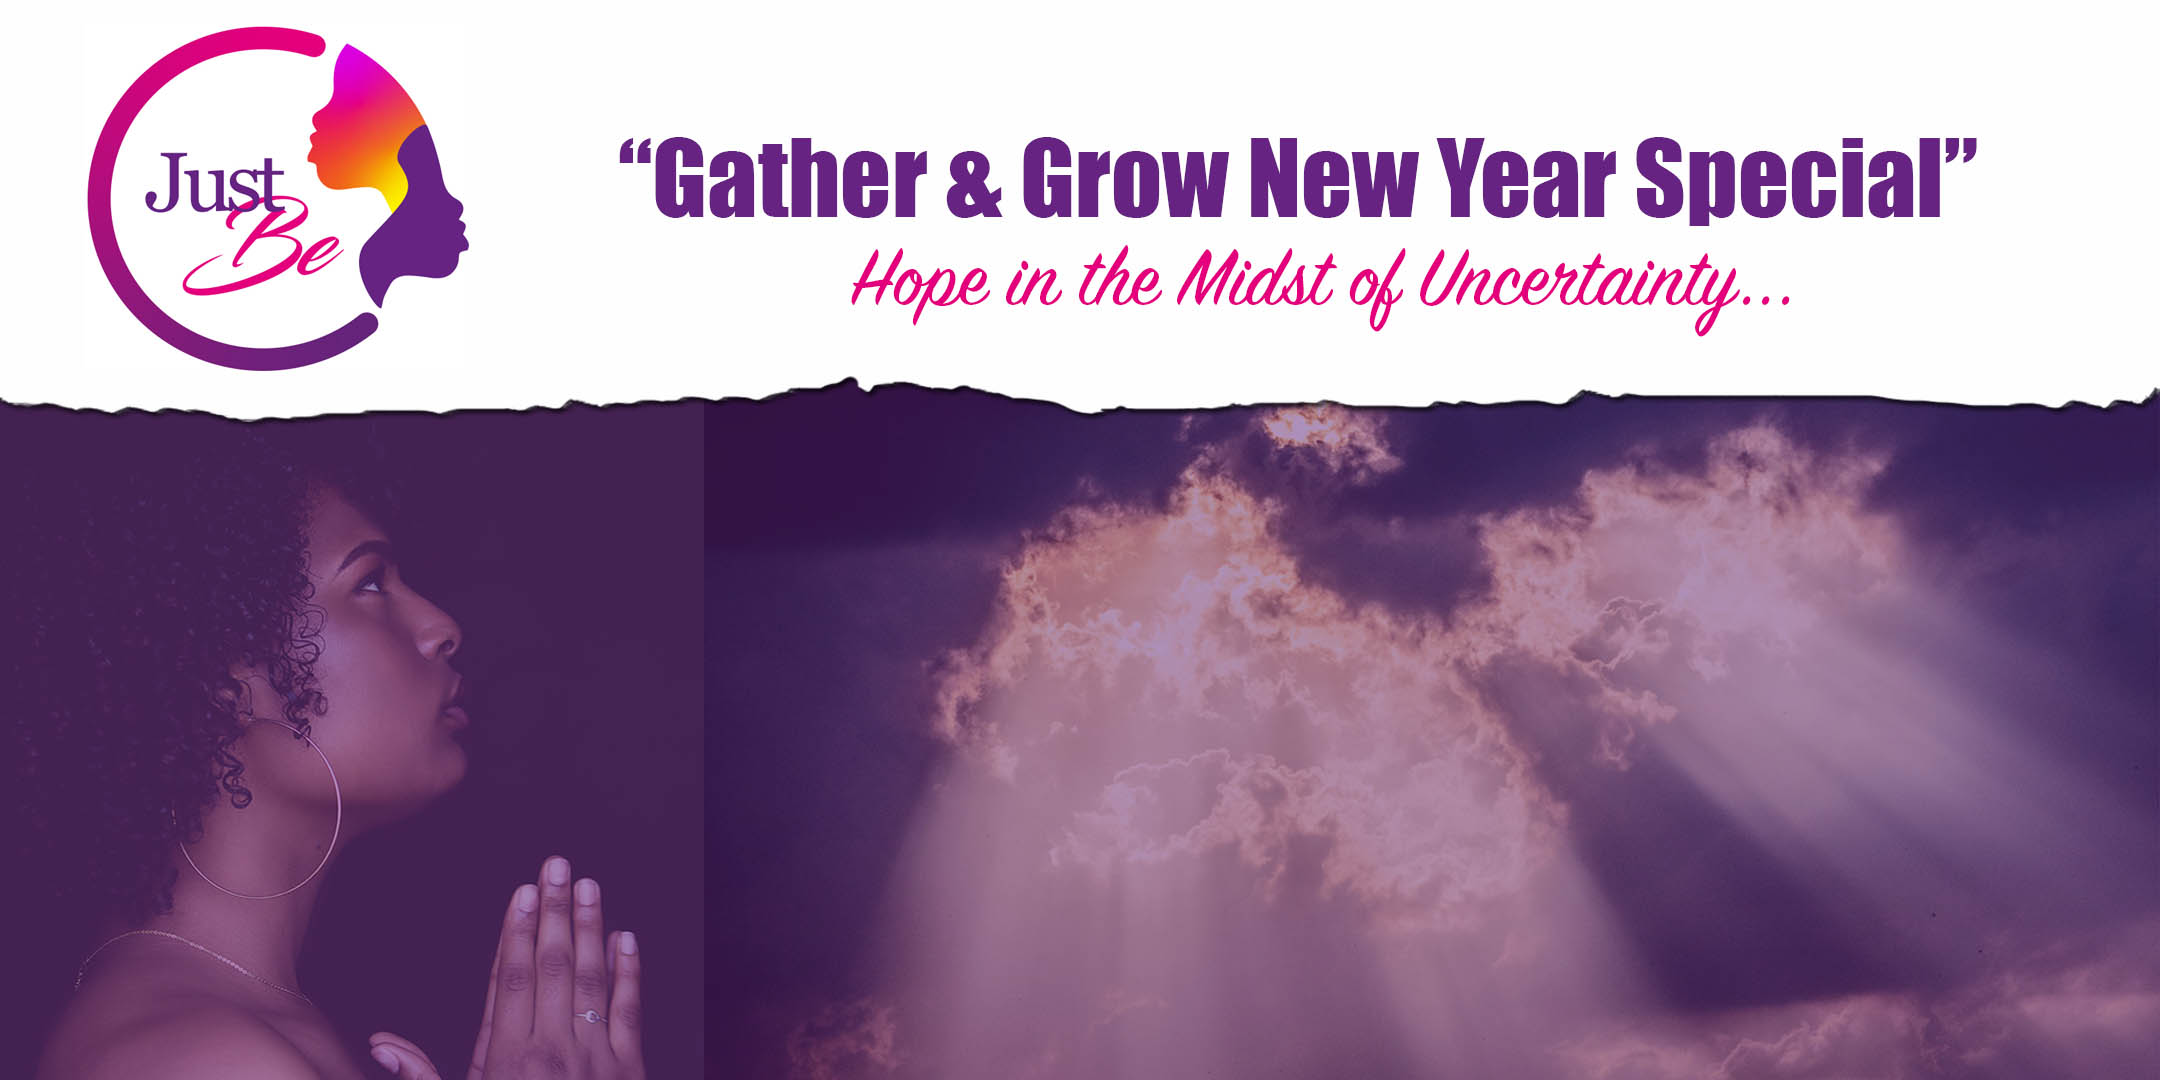 Gather & Grow New Year Special